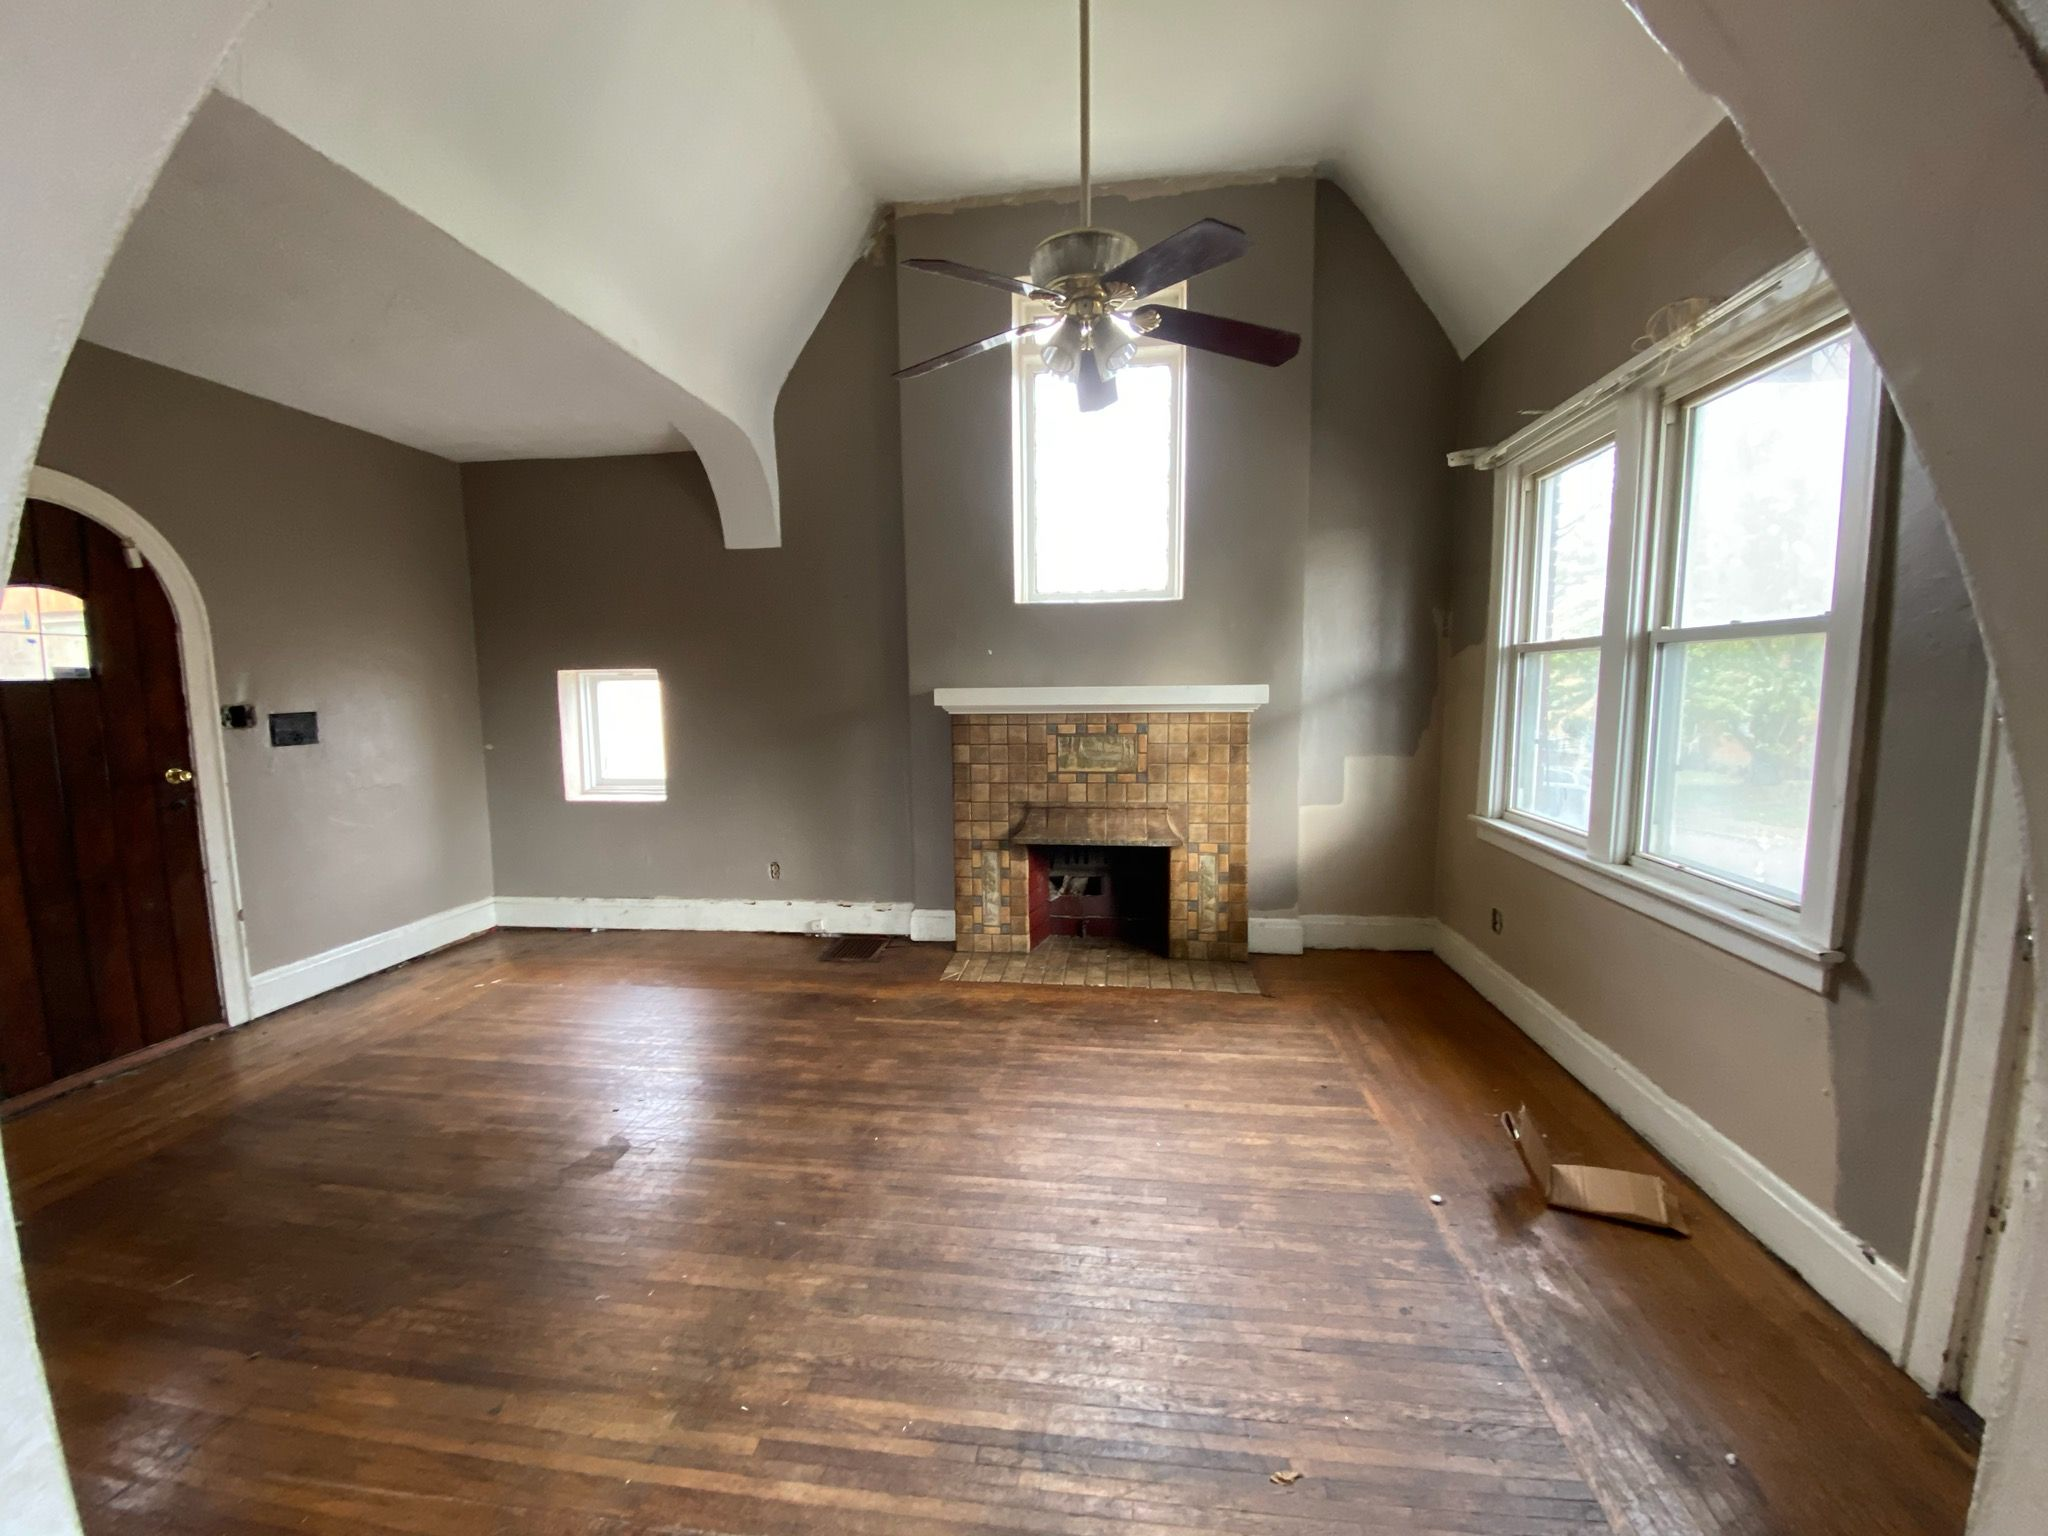 815 Overlook Ave (Image - 3)